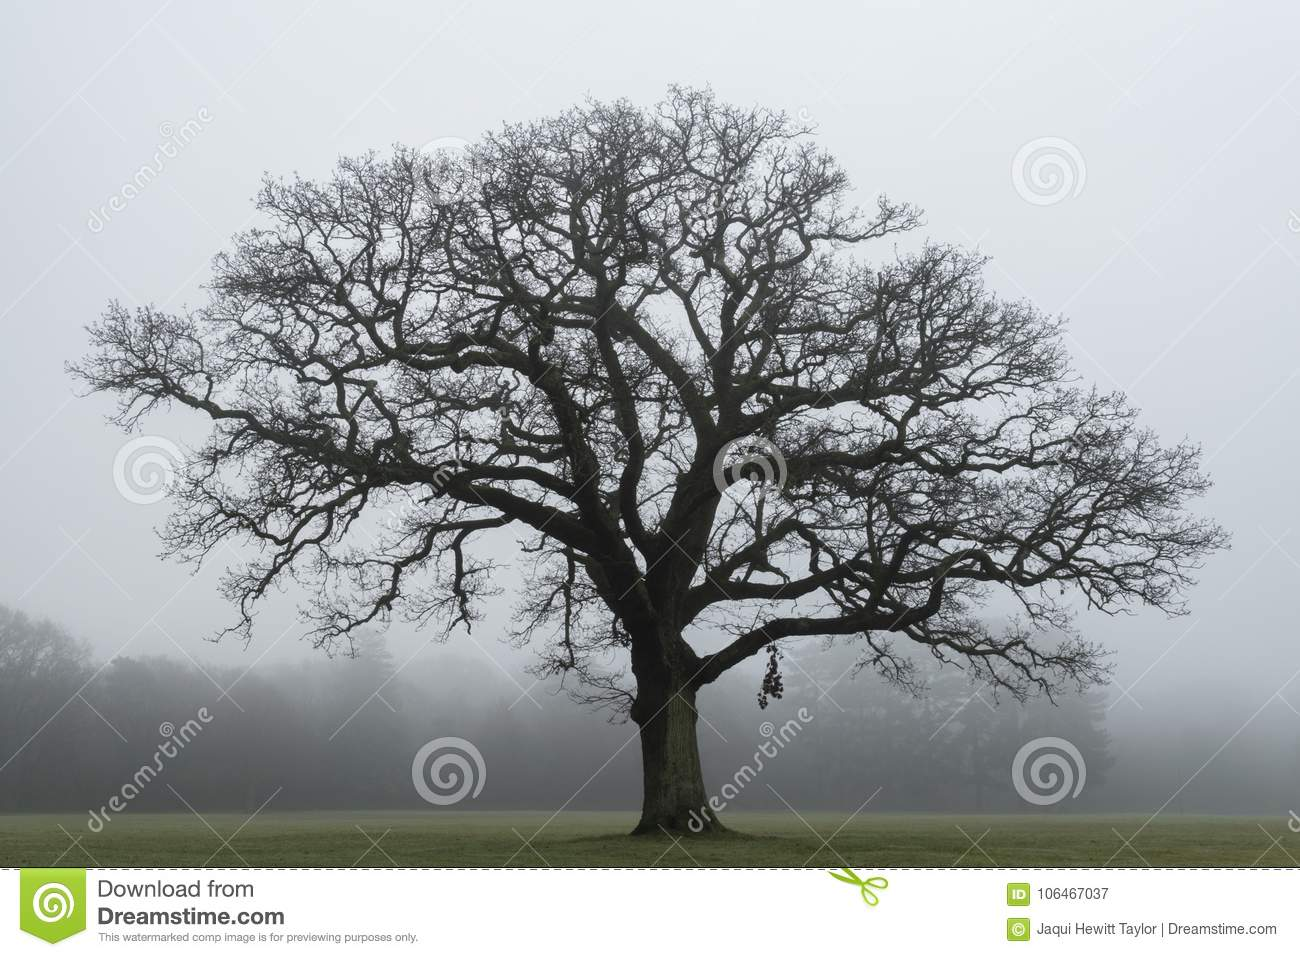 A tree on a misty day on Southampton Common